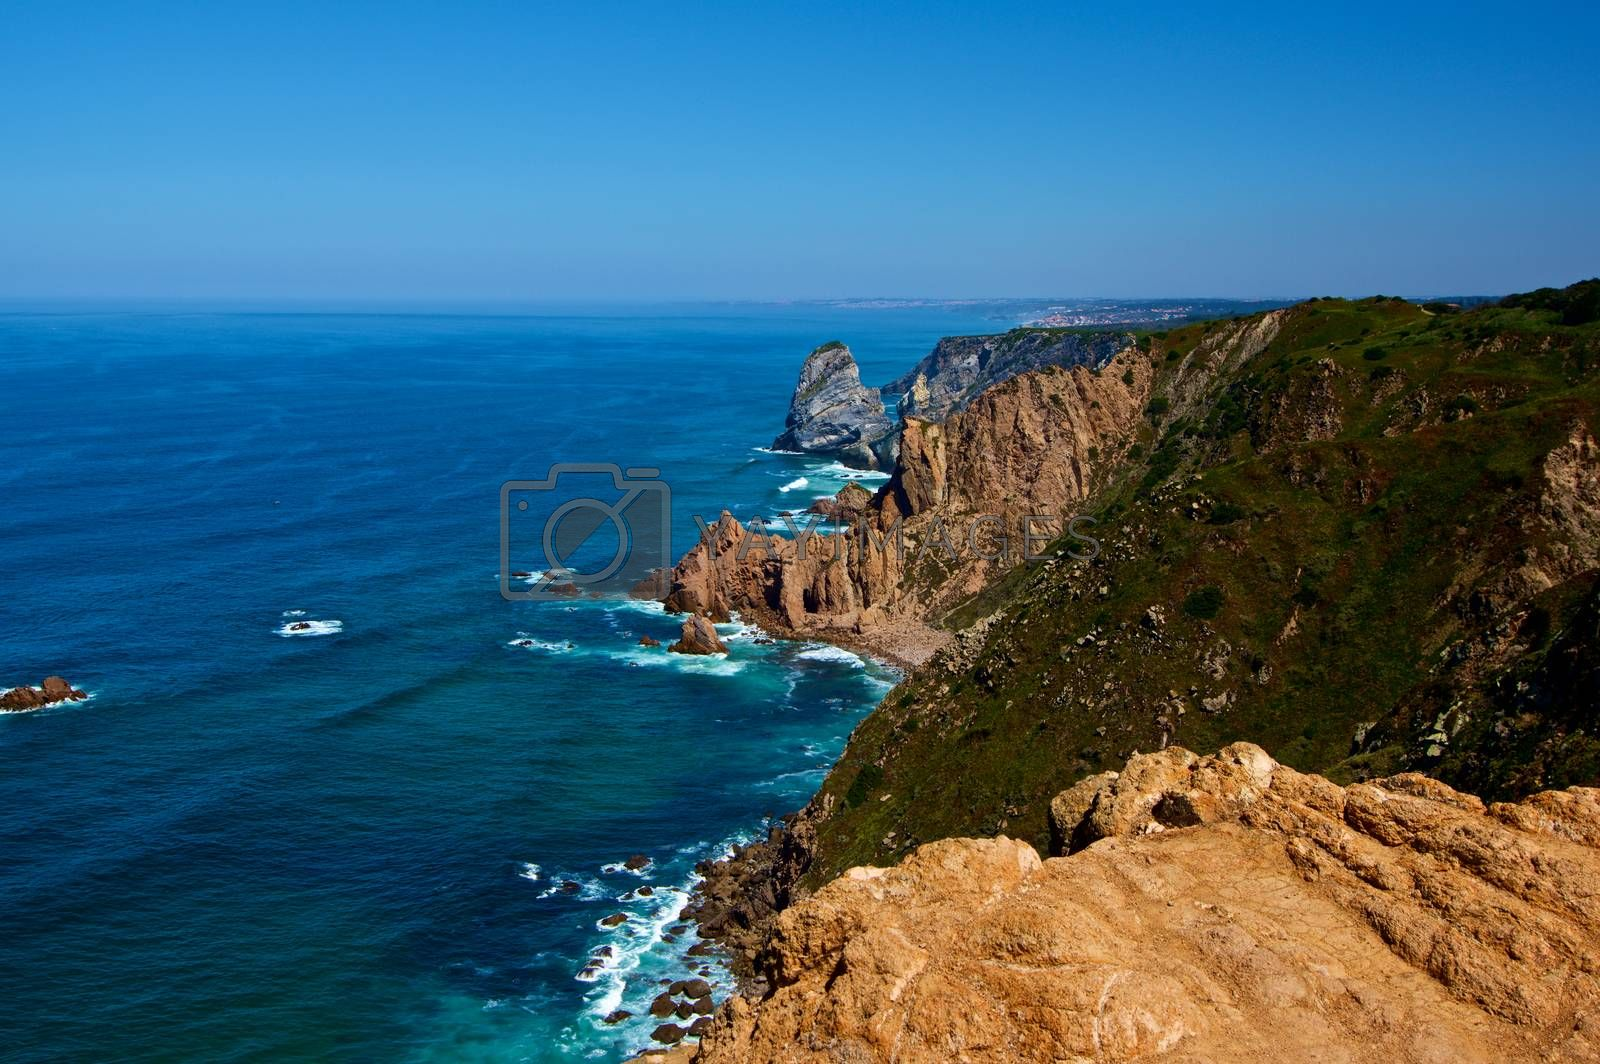 Impressive Landscape with Stormy Ocean and High Sheer Cliffs over Horizon in Sunny Day Outdoors. Cabo da Roca, Portugal